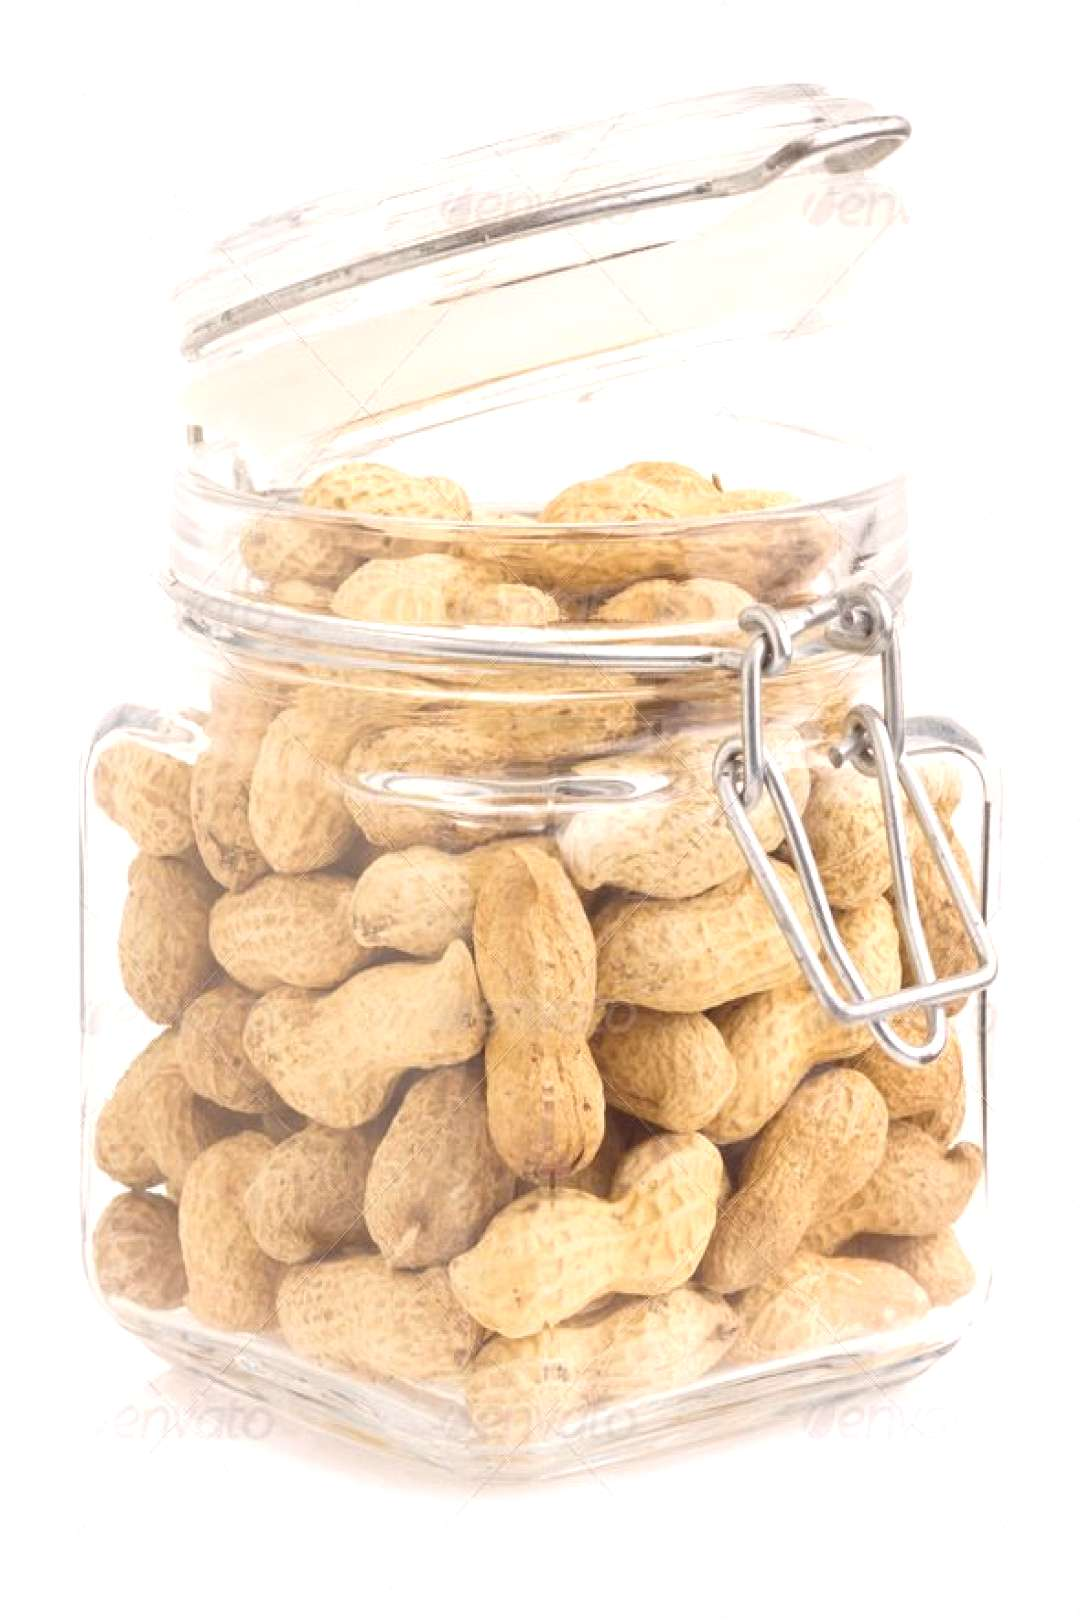 nuts peanuts on white background by seregam. nuts peanuts isolated on white background